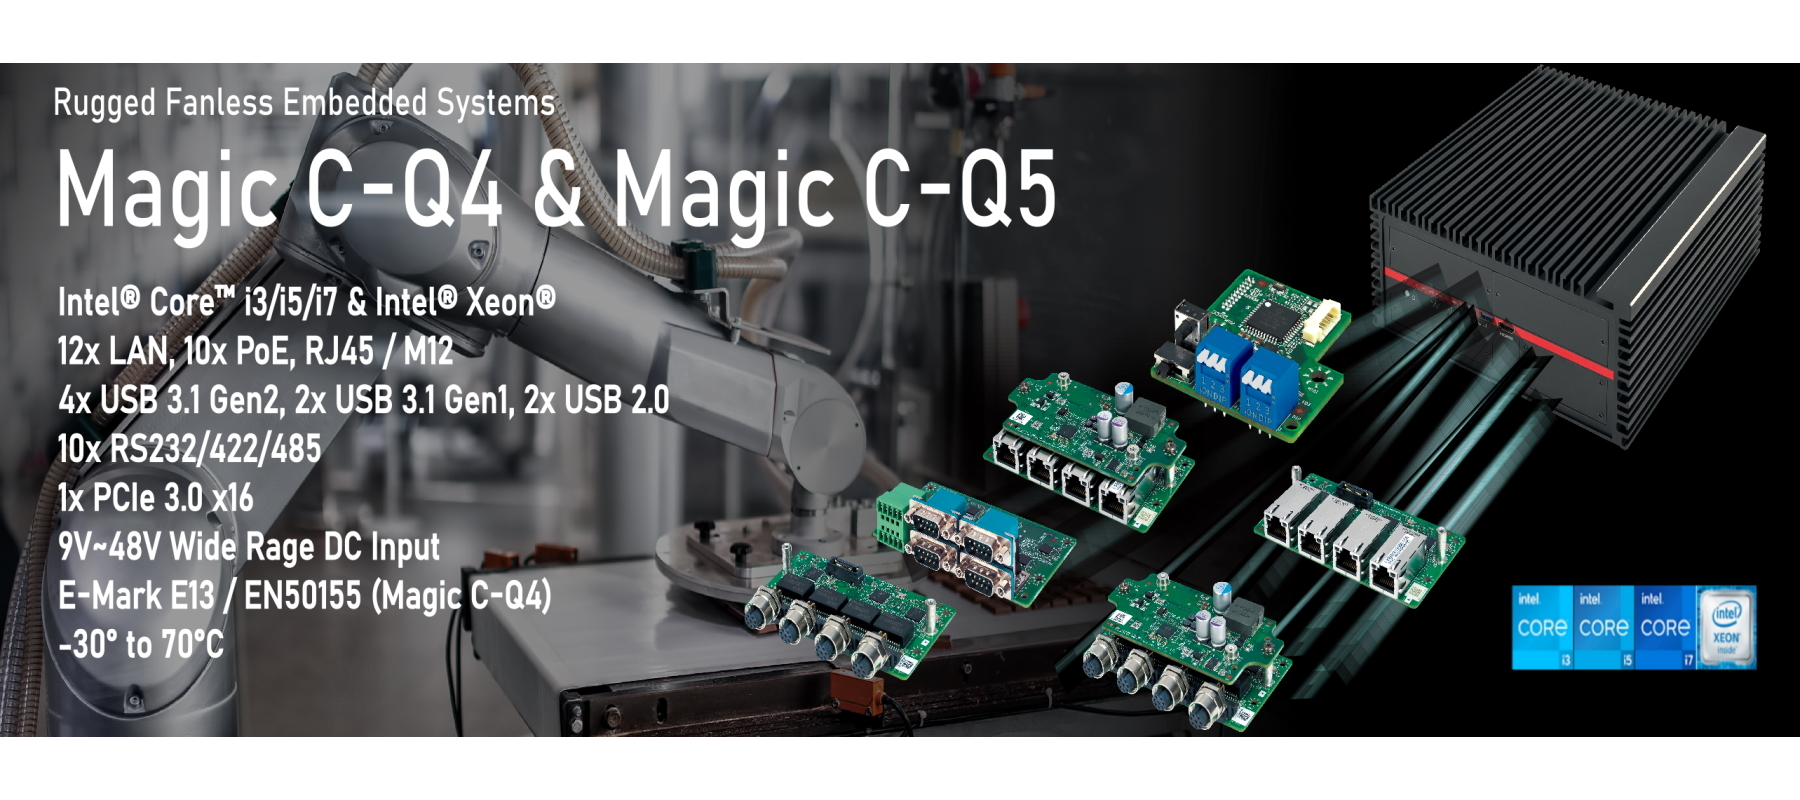 Box-PC Magic C-Q4 und Magic C-Q5_1800